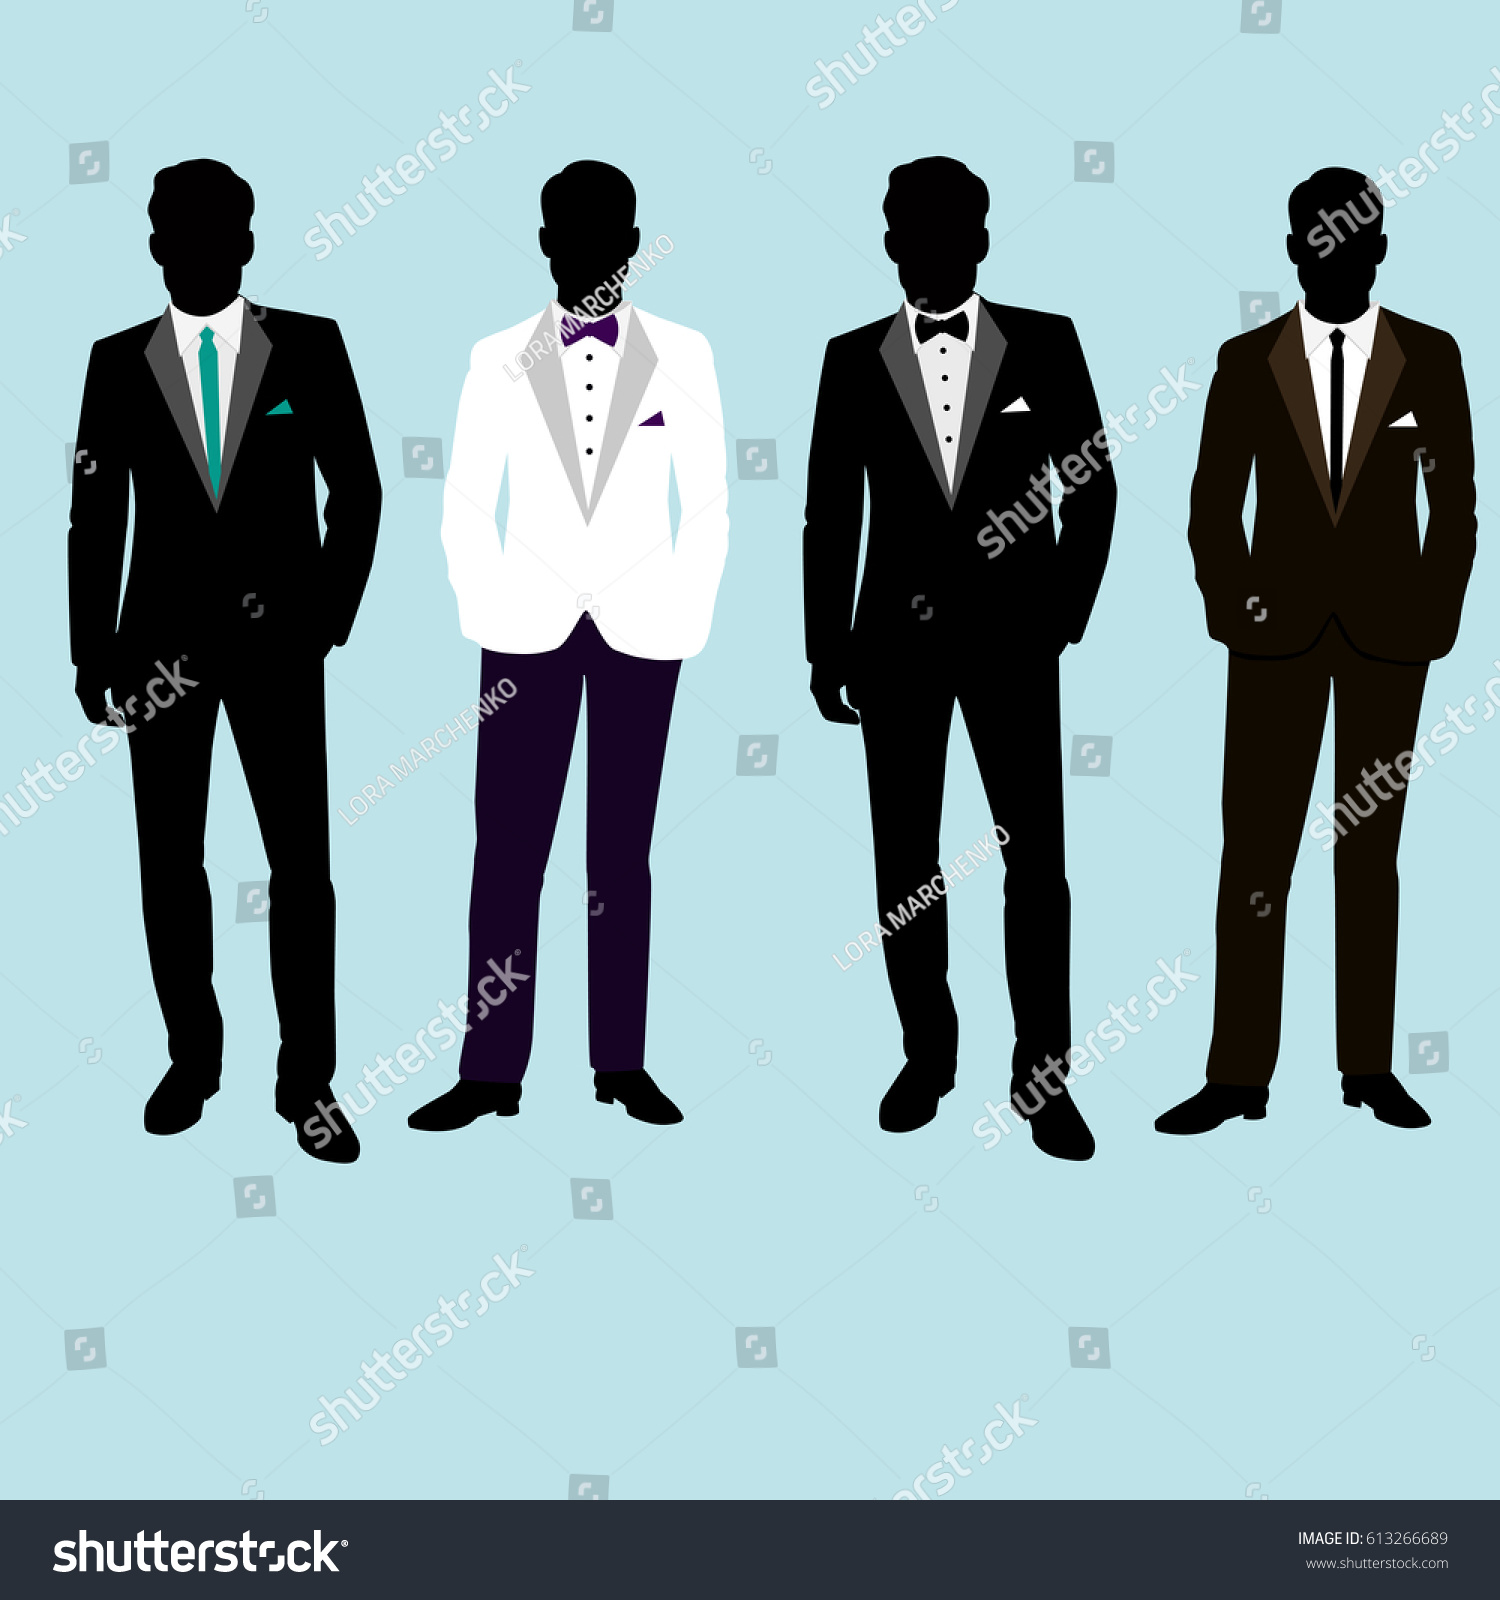 Wedding Mens Suit Tuxedo Collection Groom Stock Vector 613266689 ...